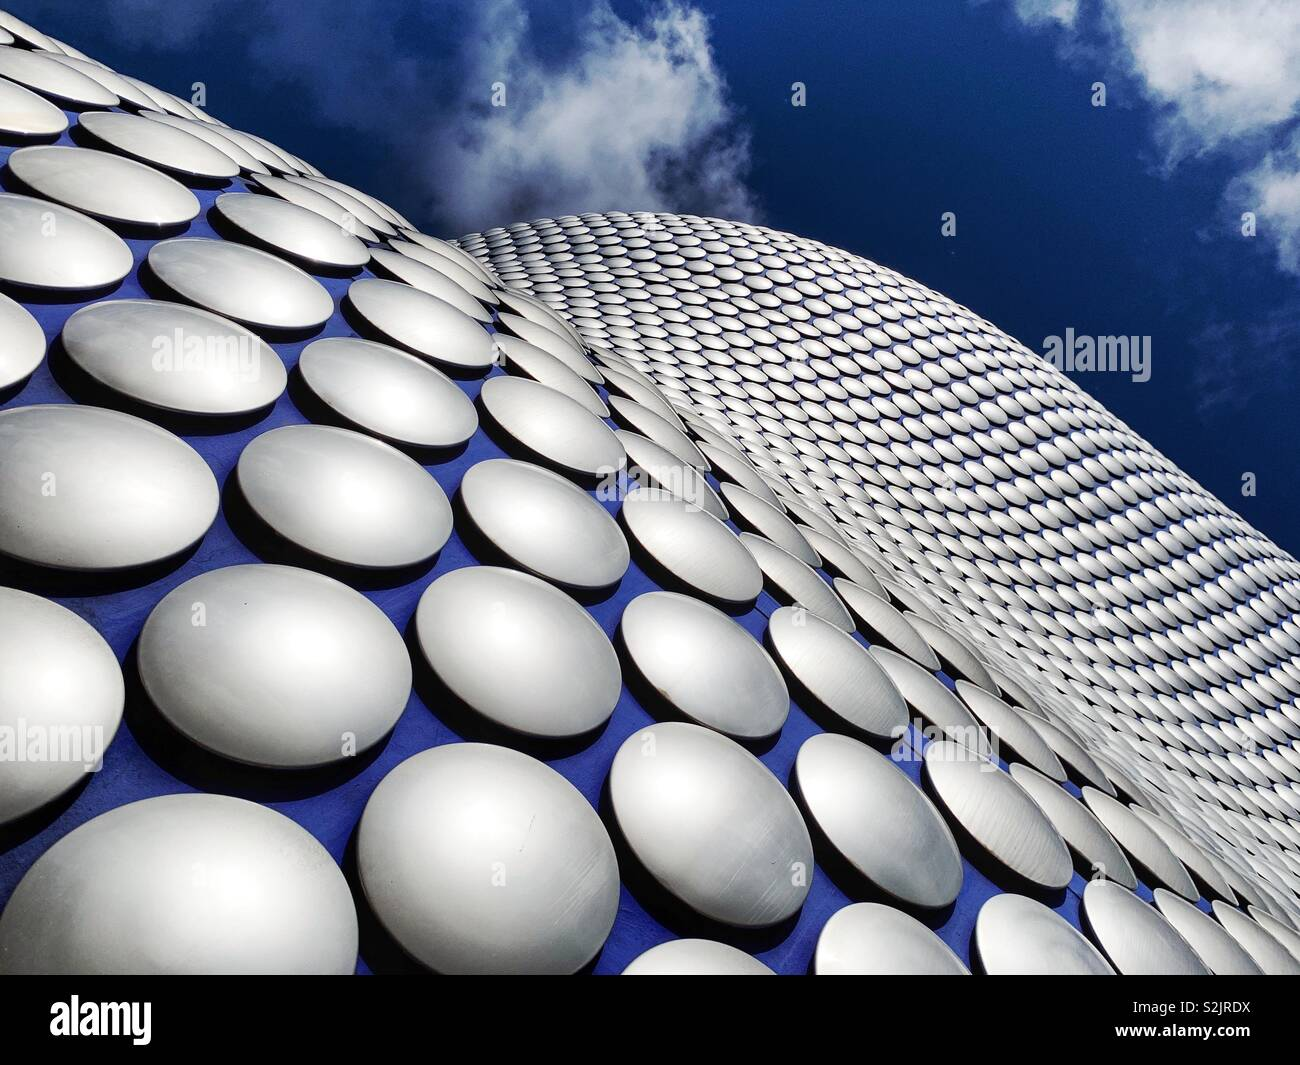 Selfridges, Birmingham, UK Banque D'Images